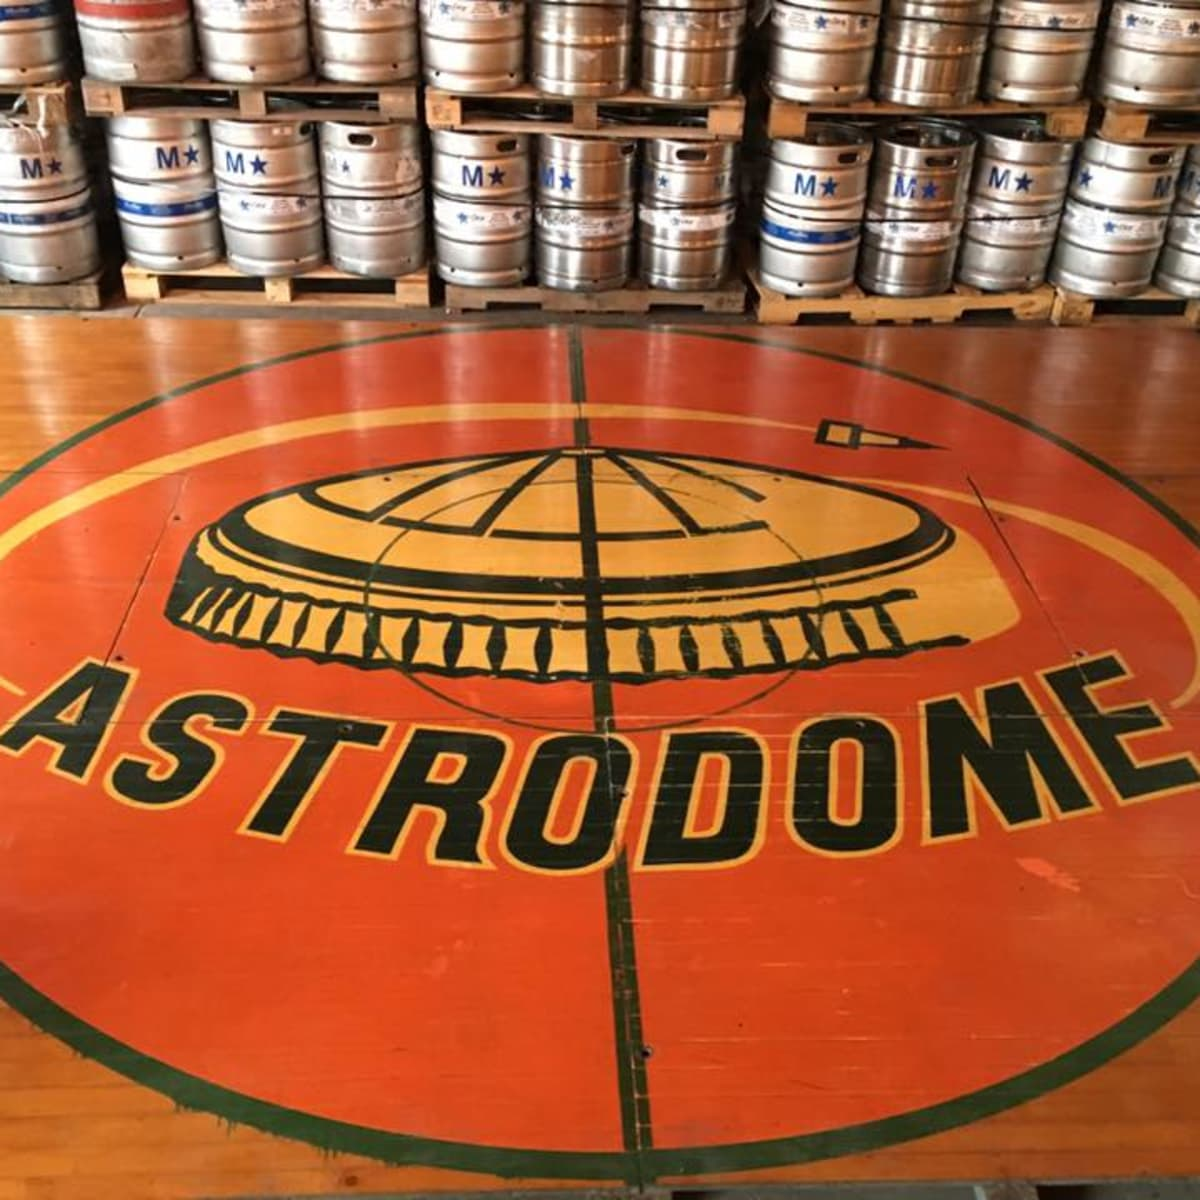 8th Wonder Brewery Astrodome floor